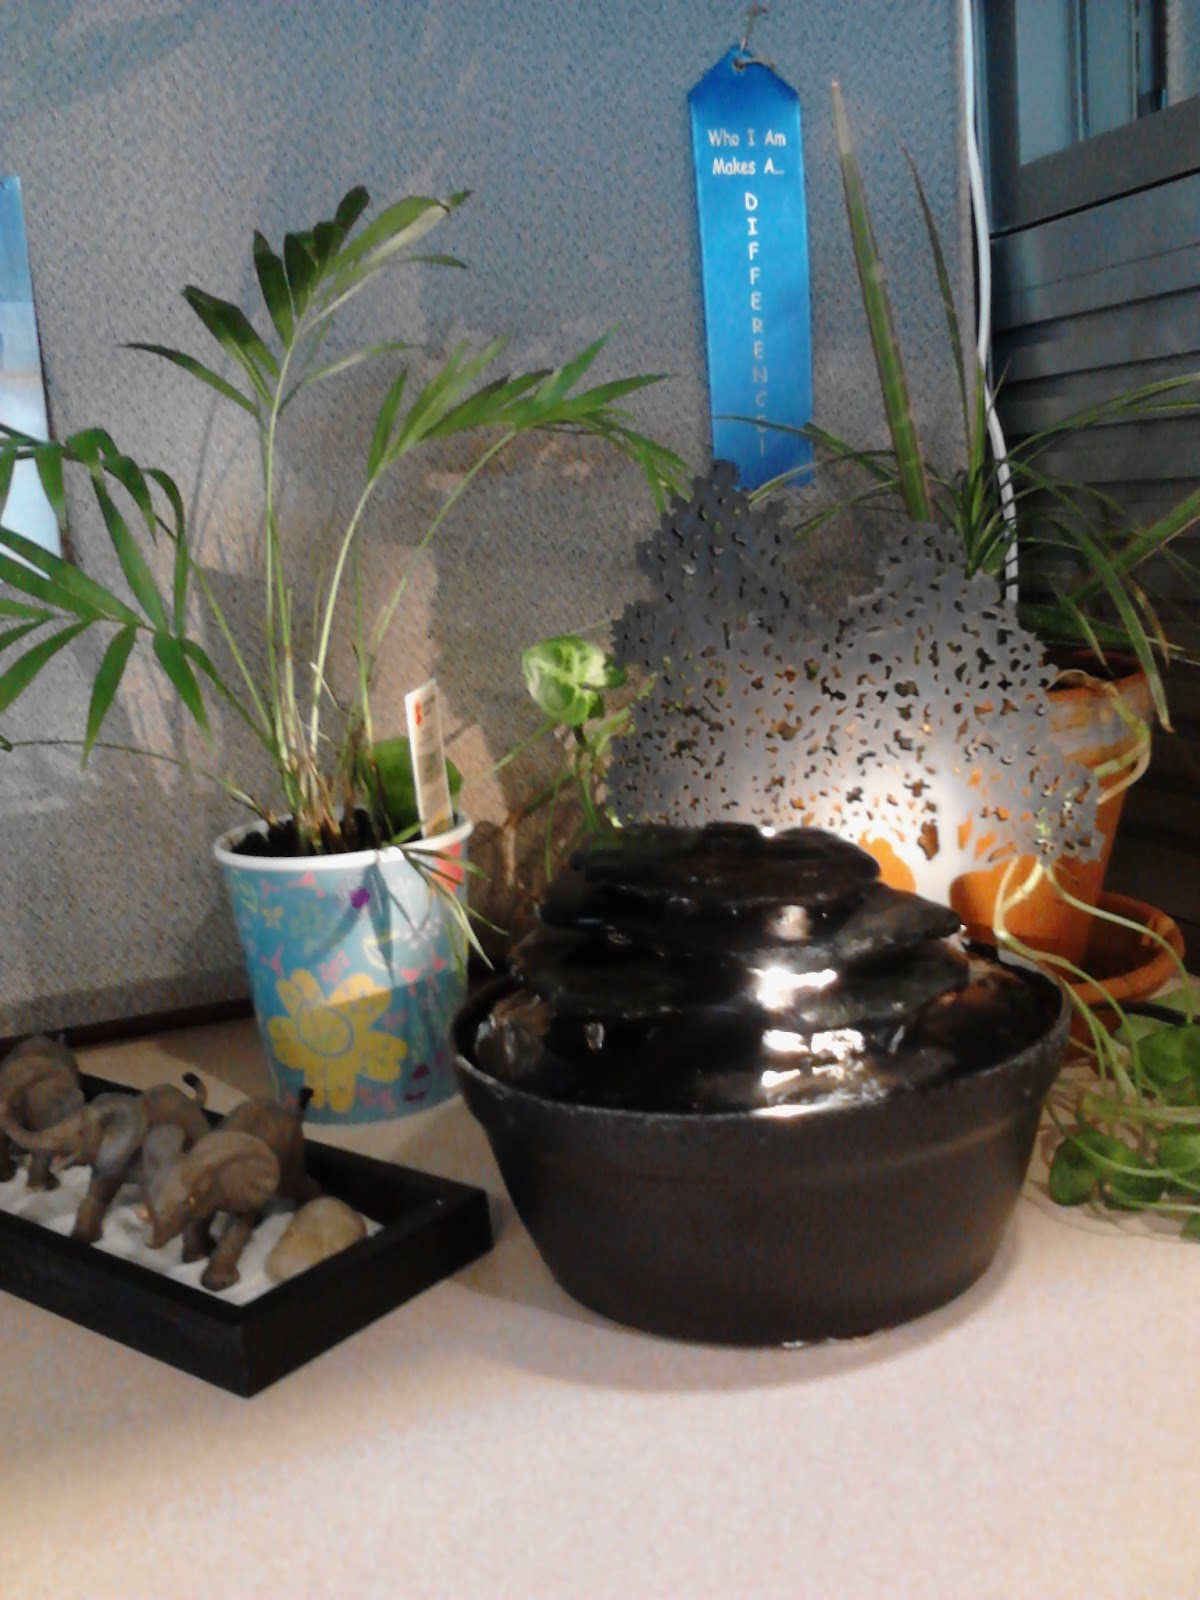 April 39 s country life creating a personal zen spot at work - Zen office decorating ideas ...